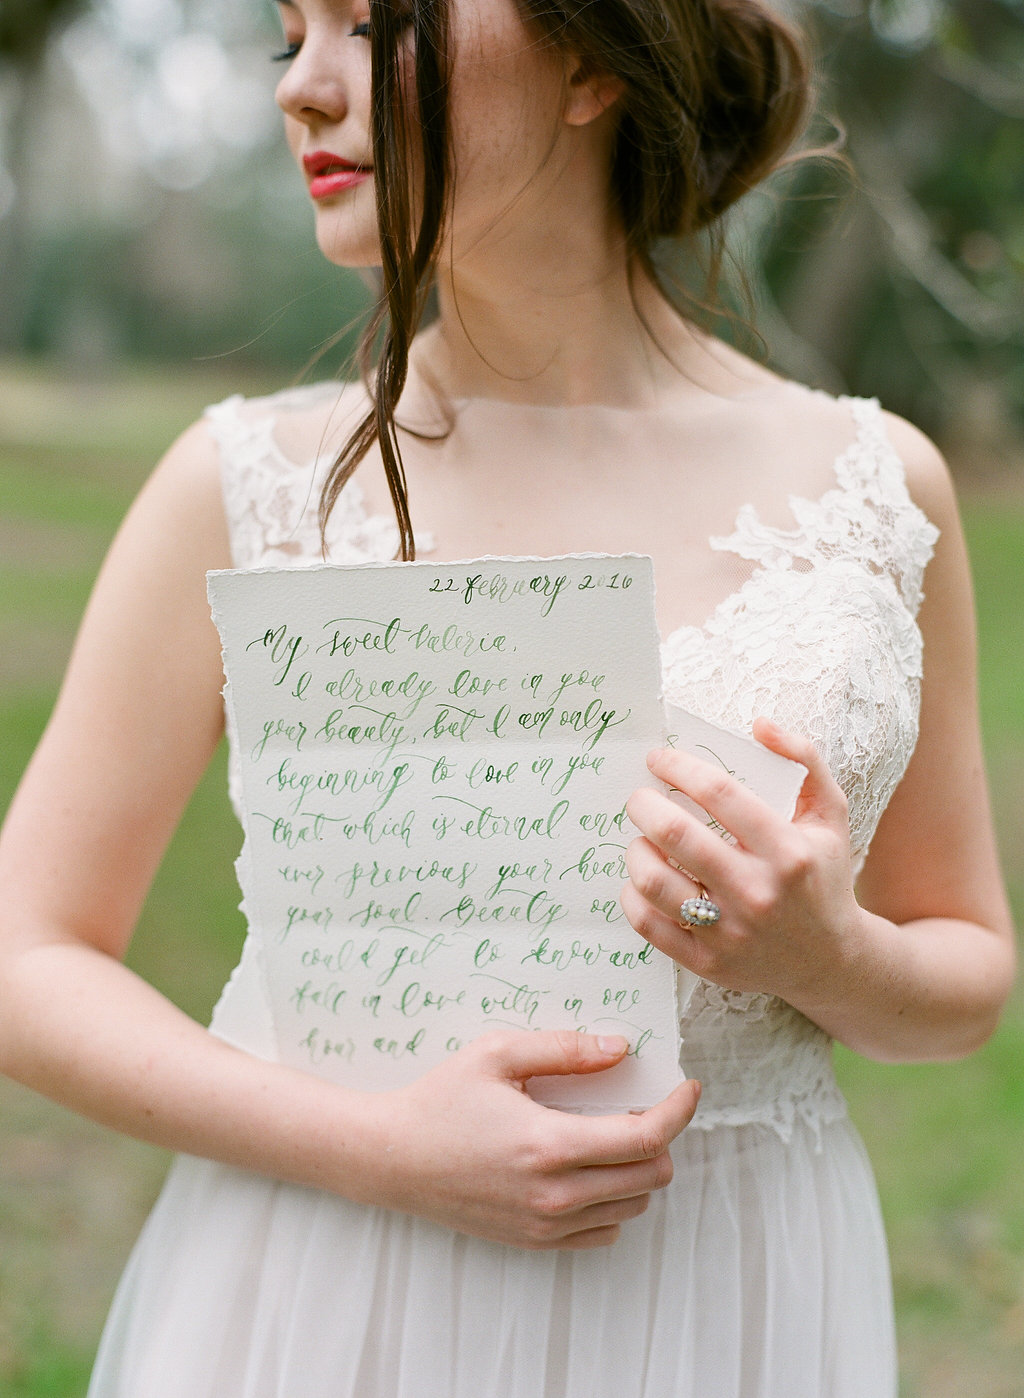 the-happy-bloom-photography-ti-adora-7553-ivory-and-beau-bridal-boutique-savannah-wedding-dresses-old-sheldon-ruins-savannah-wedding-planner-savannah-event-designer-savannah-weddings-savannah-film-photographer-savannah-photography-workshop-14.jpg